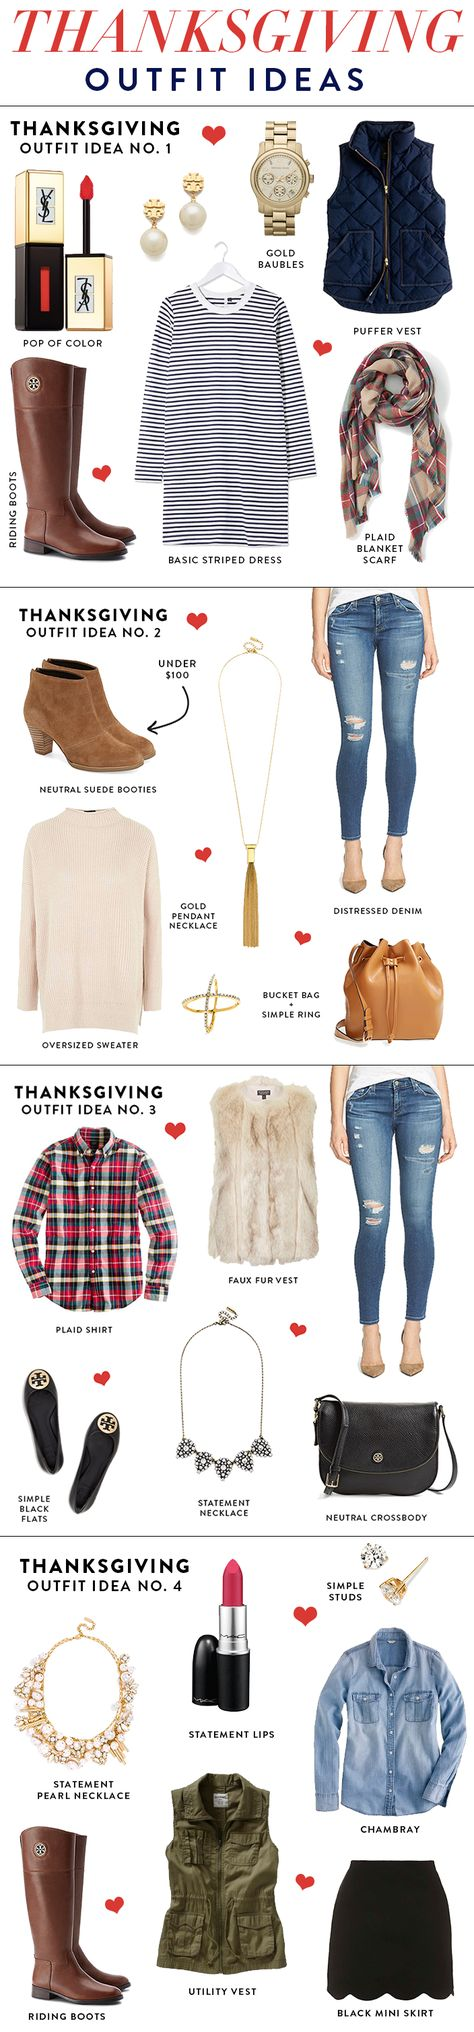 @brightonkeller // BrightonTheDay Blog // What to wear to Thanksgiving: 4 different thanksgiving outfit ideas // thanksgiving outfit ideas // casual outfit ideas for fall // fall outfits // layering outfits // chambray shirt outfit ideas // denim shirt // plaid shirt // riding boots outfits